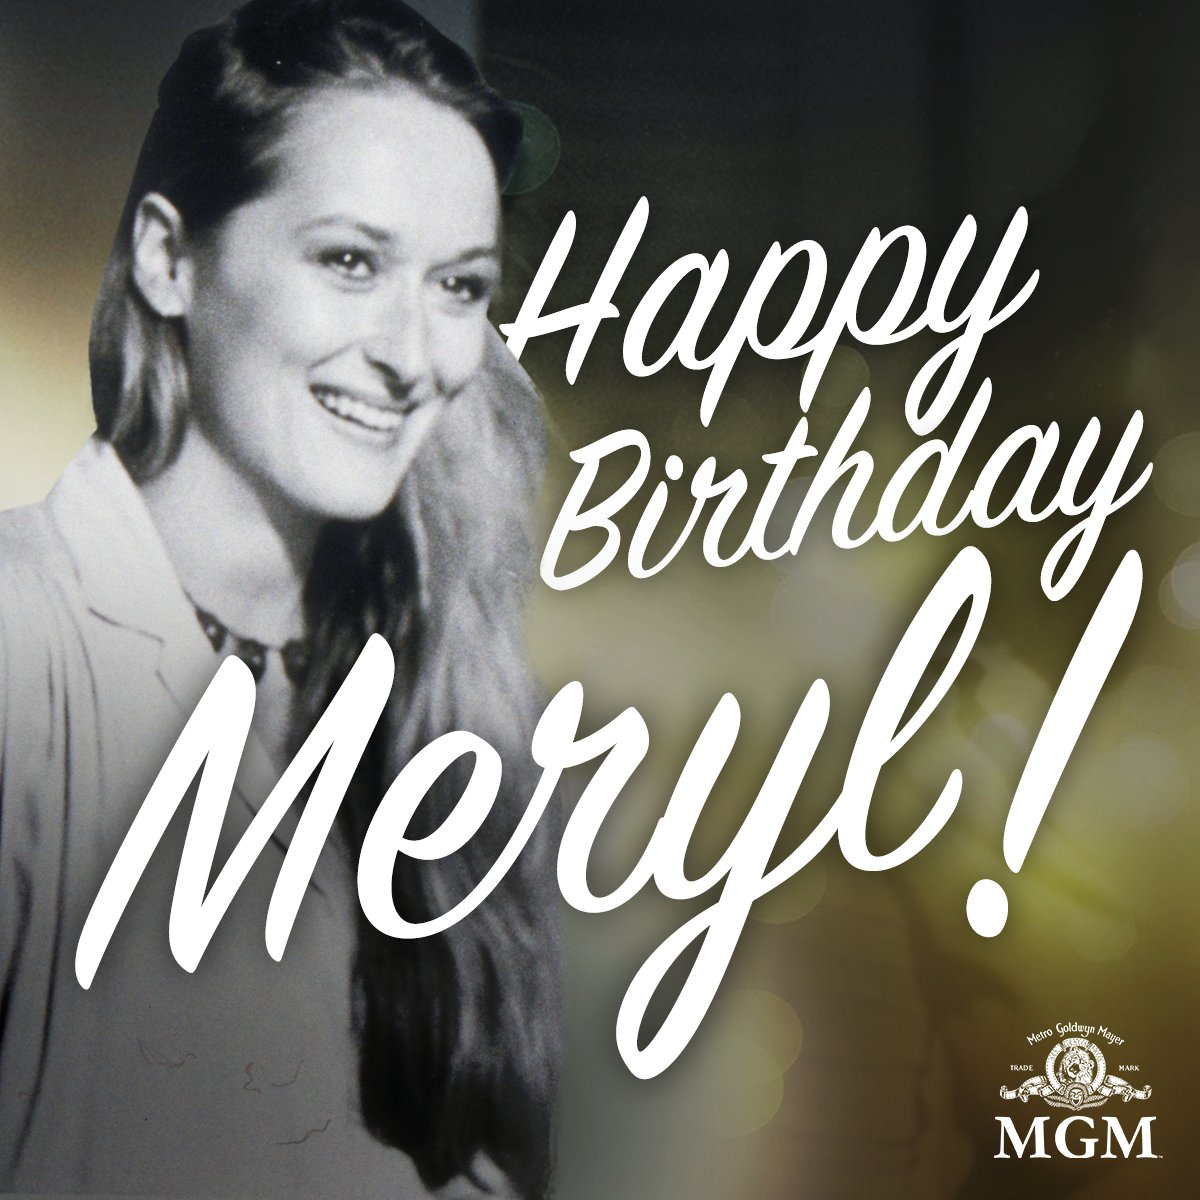 """I want to feel my life while I'm in it."" Happy Birthday to the incredible Meryl Streep! https://t.co/Ngquijux4Z"